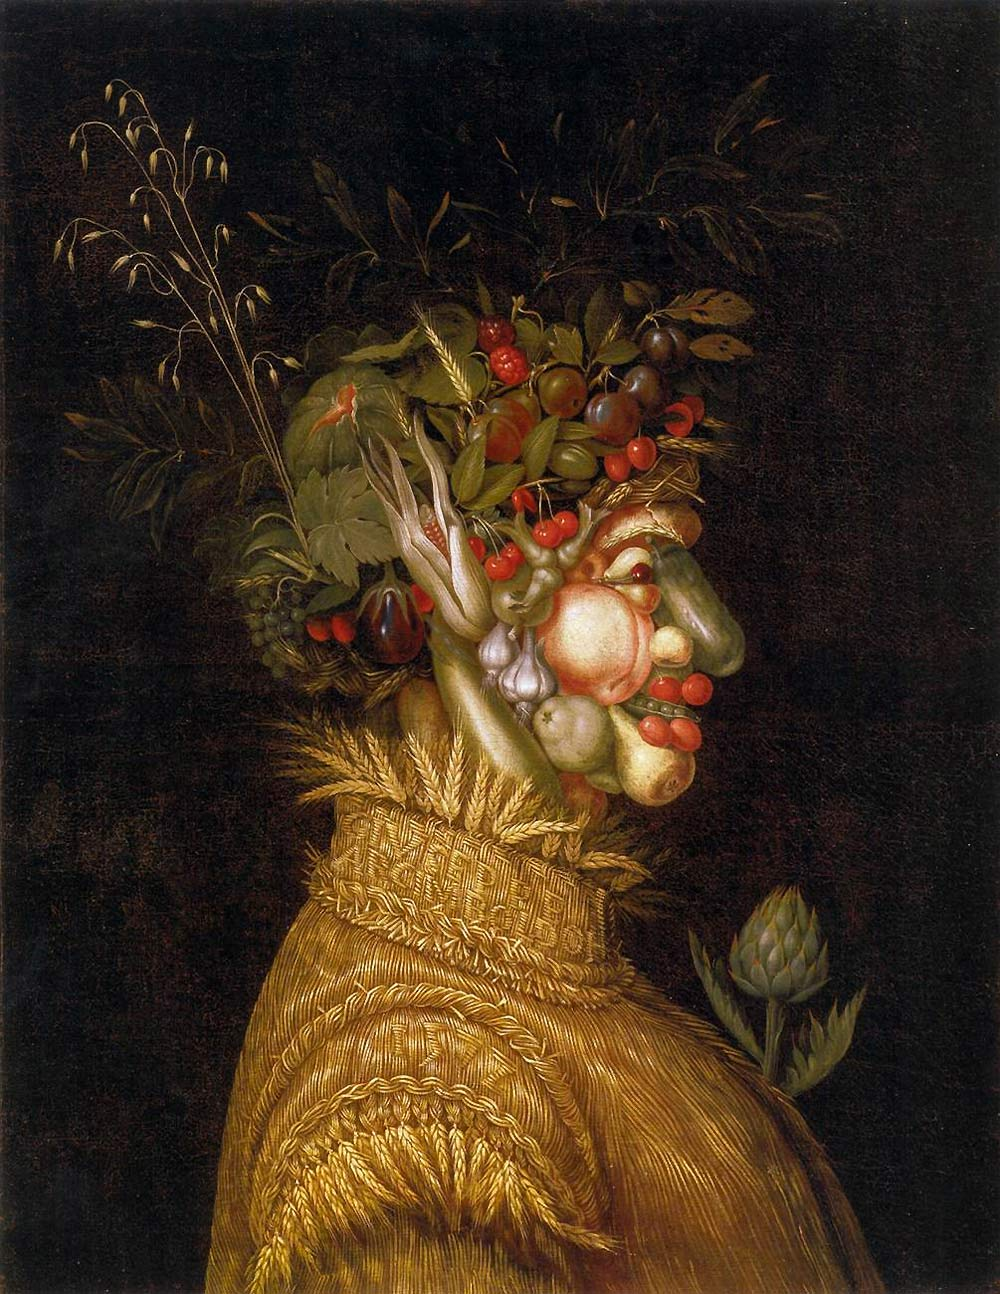 Design_Art_Beauty_Arcimboldo10